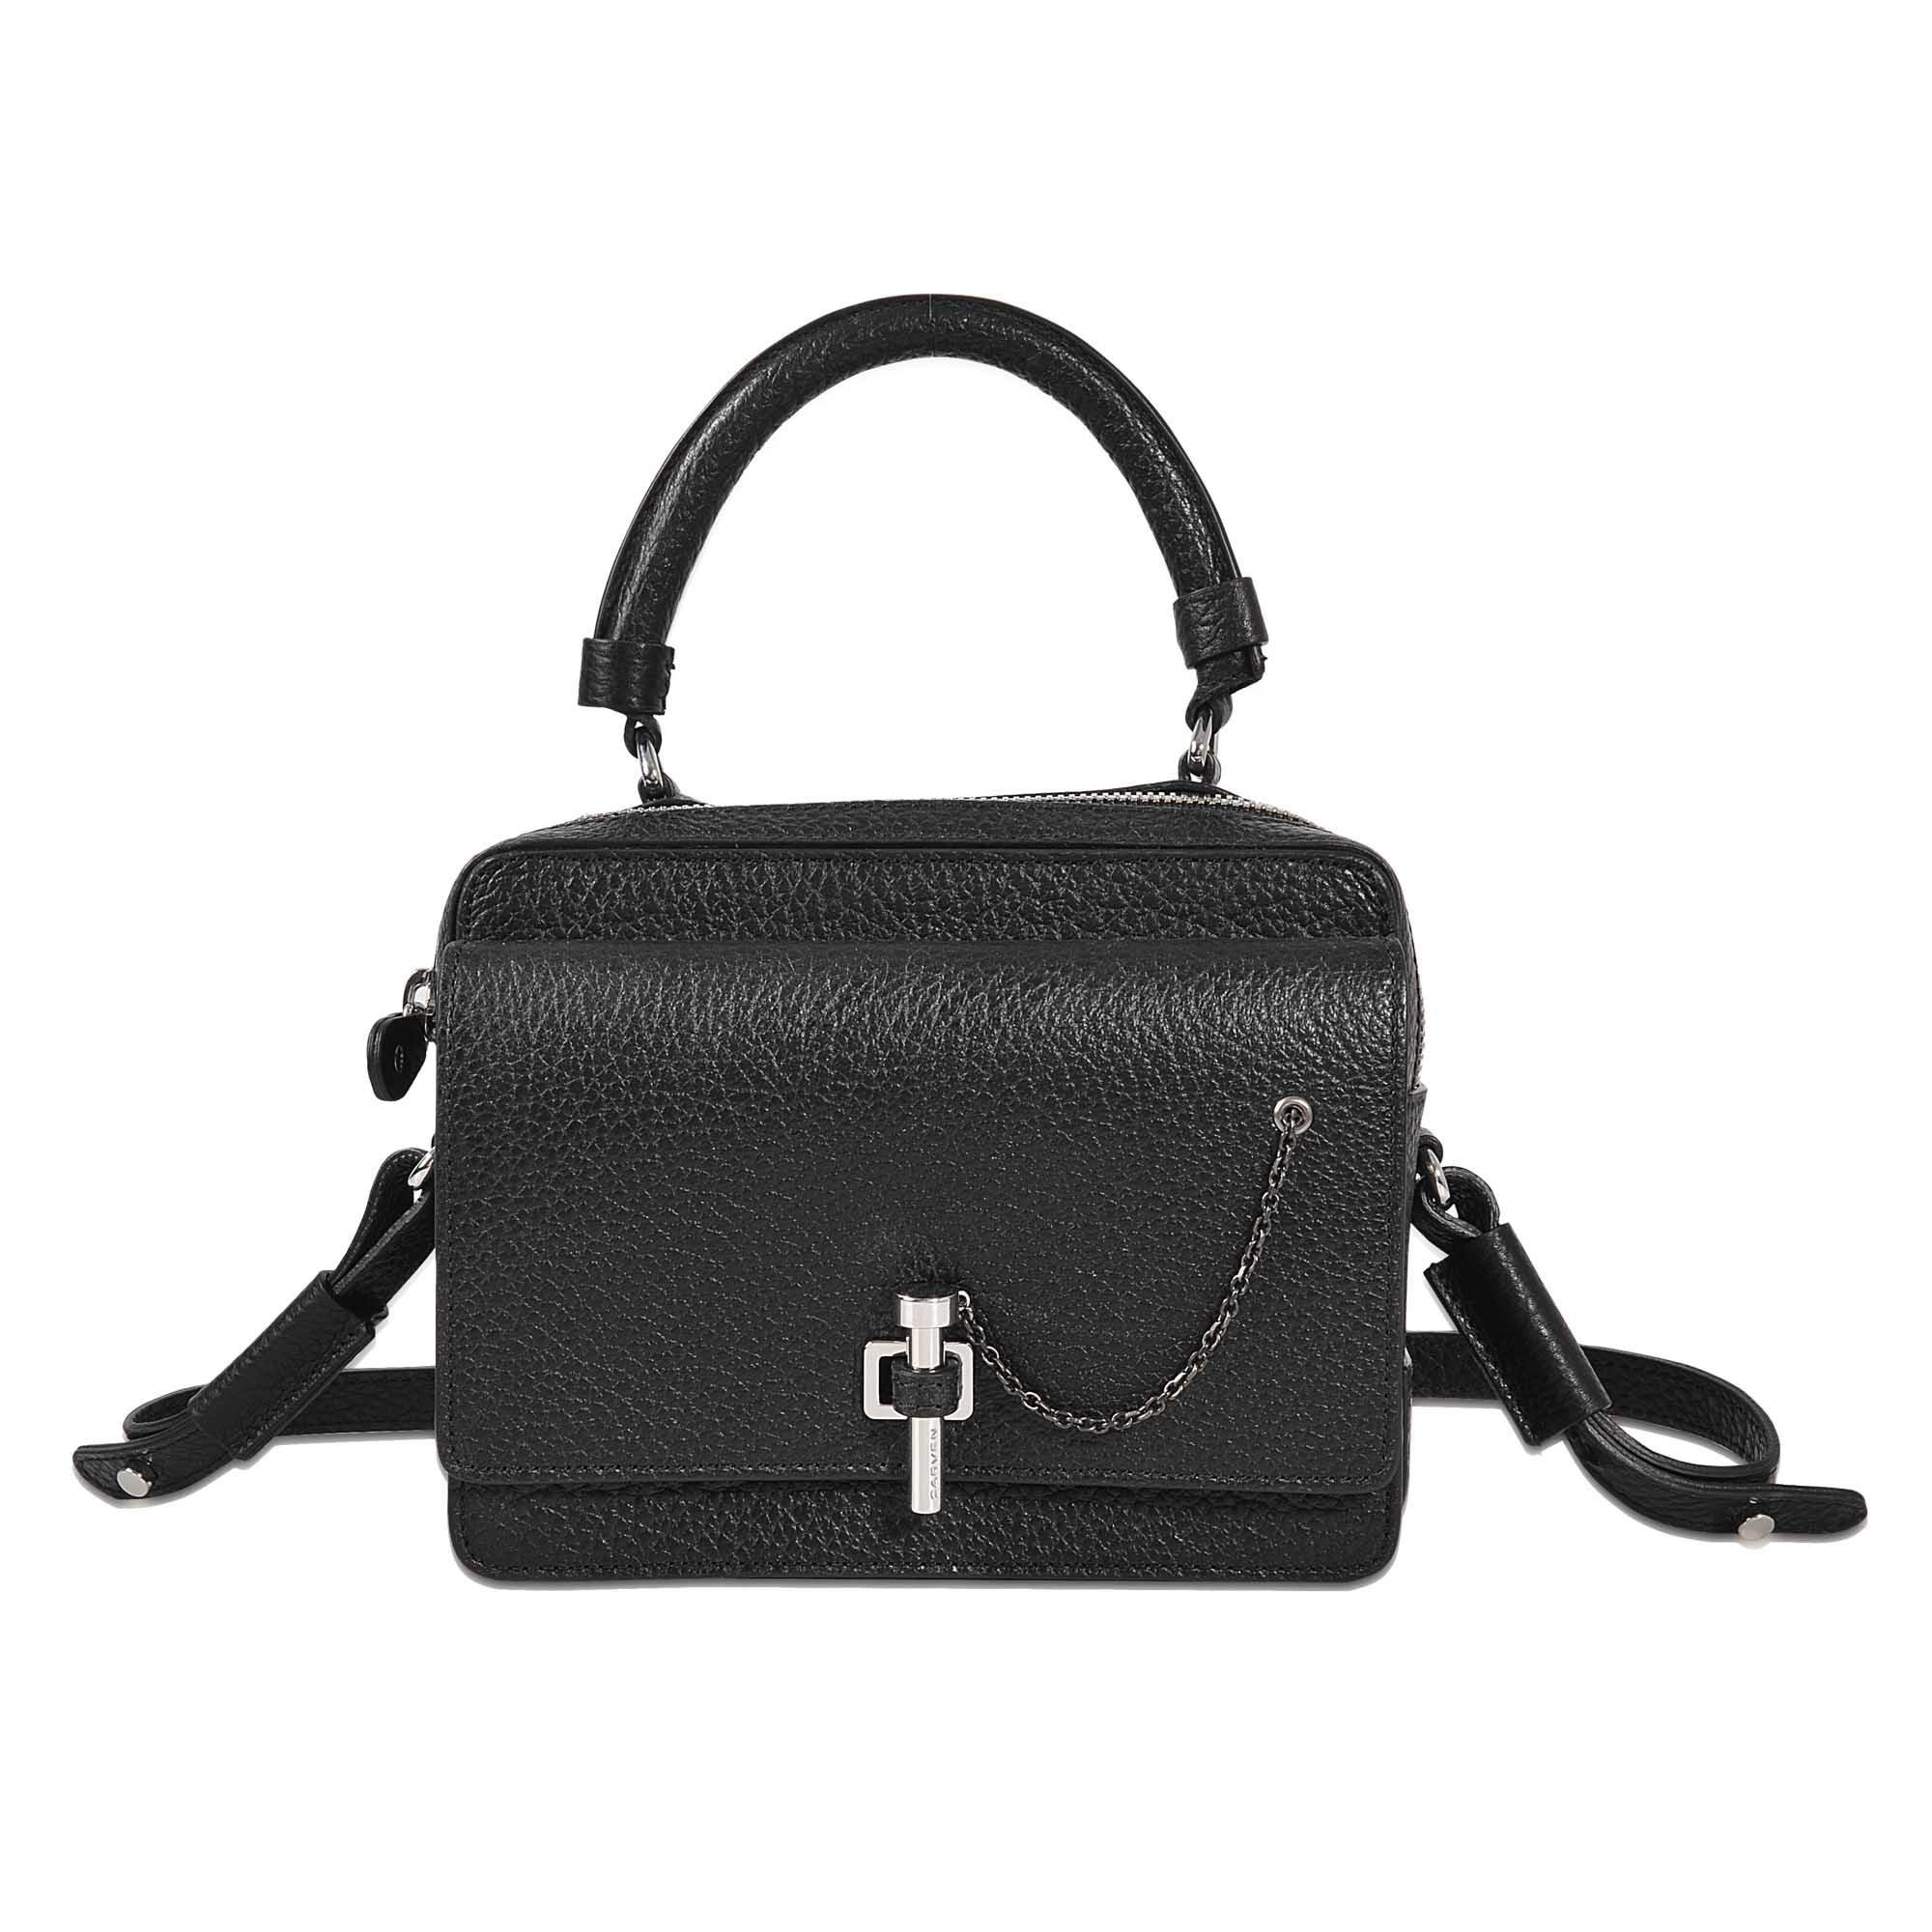 eab6f5fd8d Carven Mahler Bag Double Carry in Black - Lyst